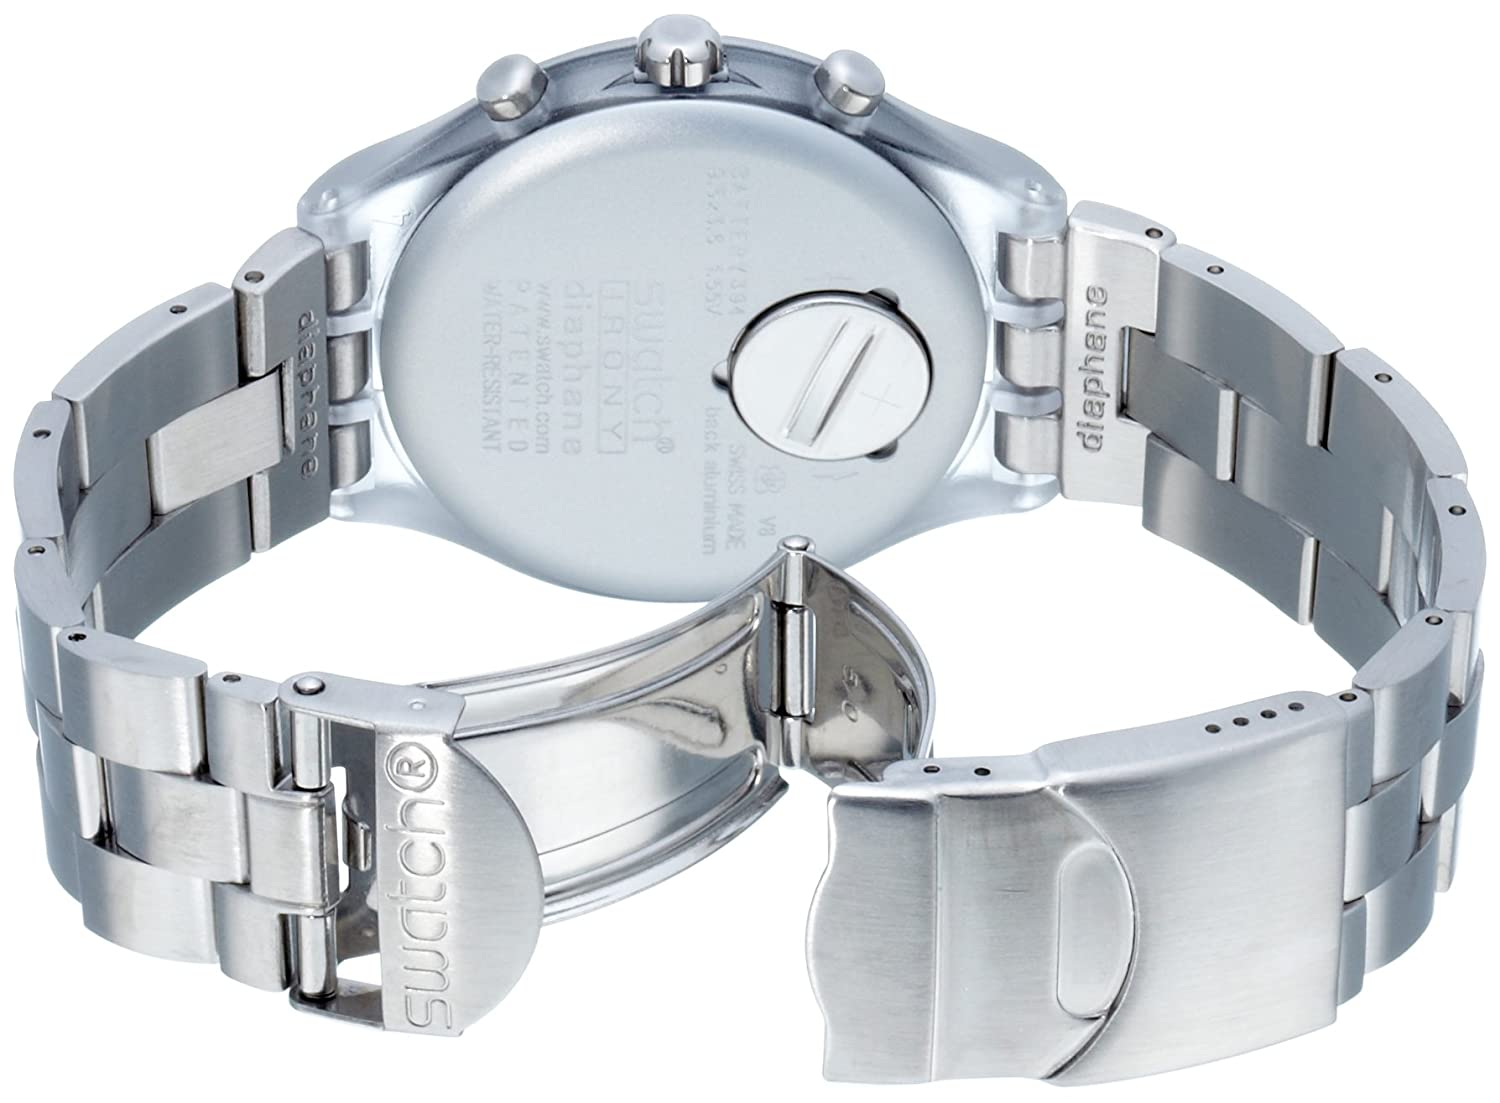 Blooded Core Full Silver Collection Svck4038g Swatch MUzqGSVp